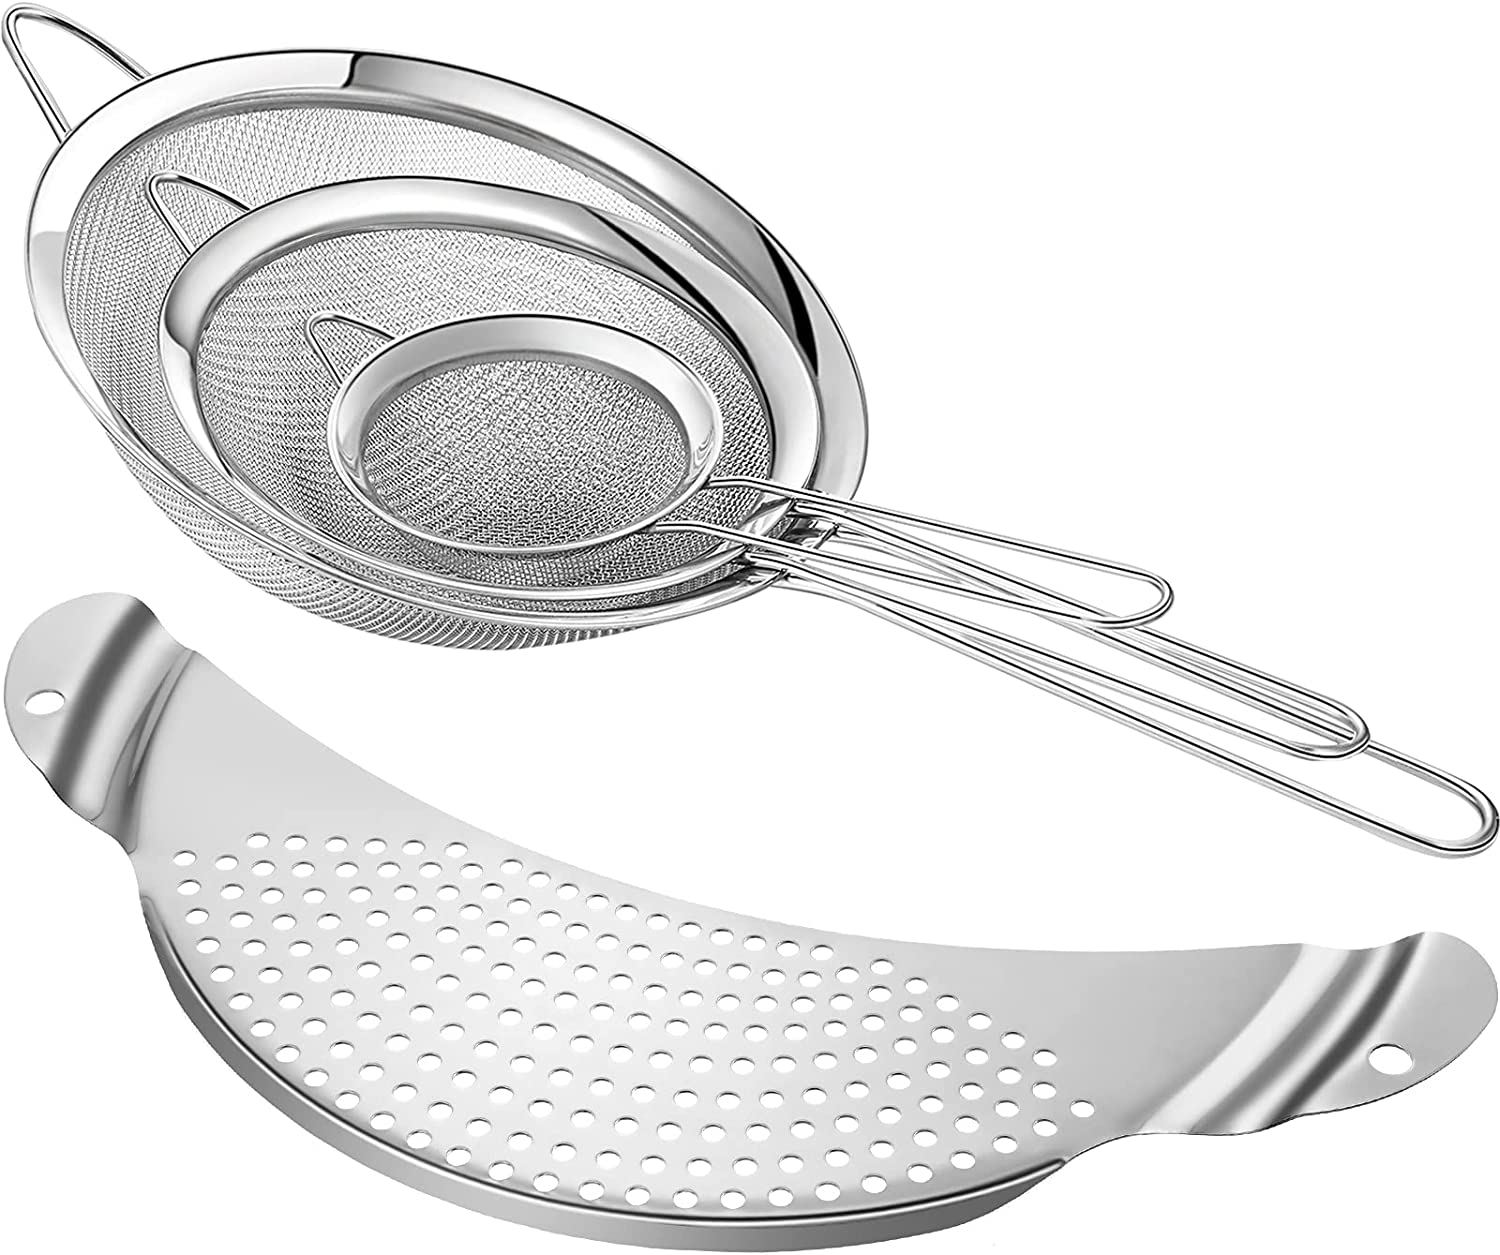 4 Pieces Stainless Steel Mesh Strainers Sets, 3 Fine Mesh Strainers Wire Strainers and 1 Pan Pot Strainer Colander Sifter for Vegetables Fruit Pasta Drain and Rinse (3.15 Inch, 4.72 Inch, 7.87 Inch)